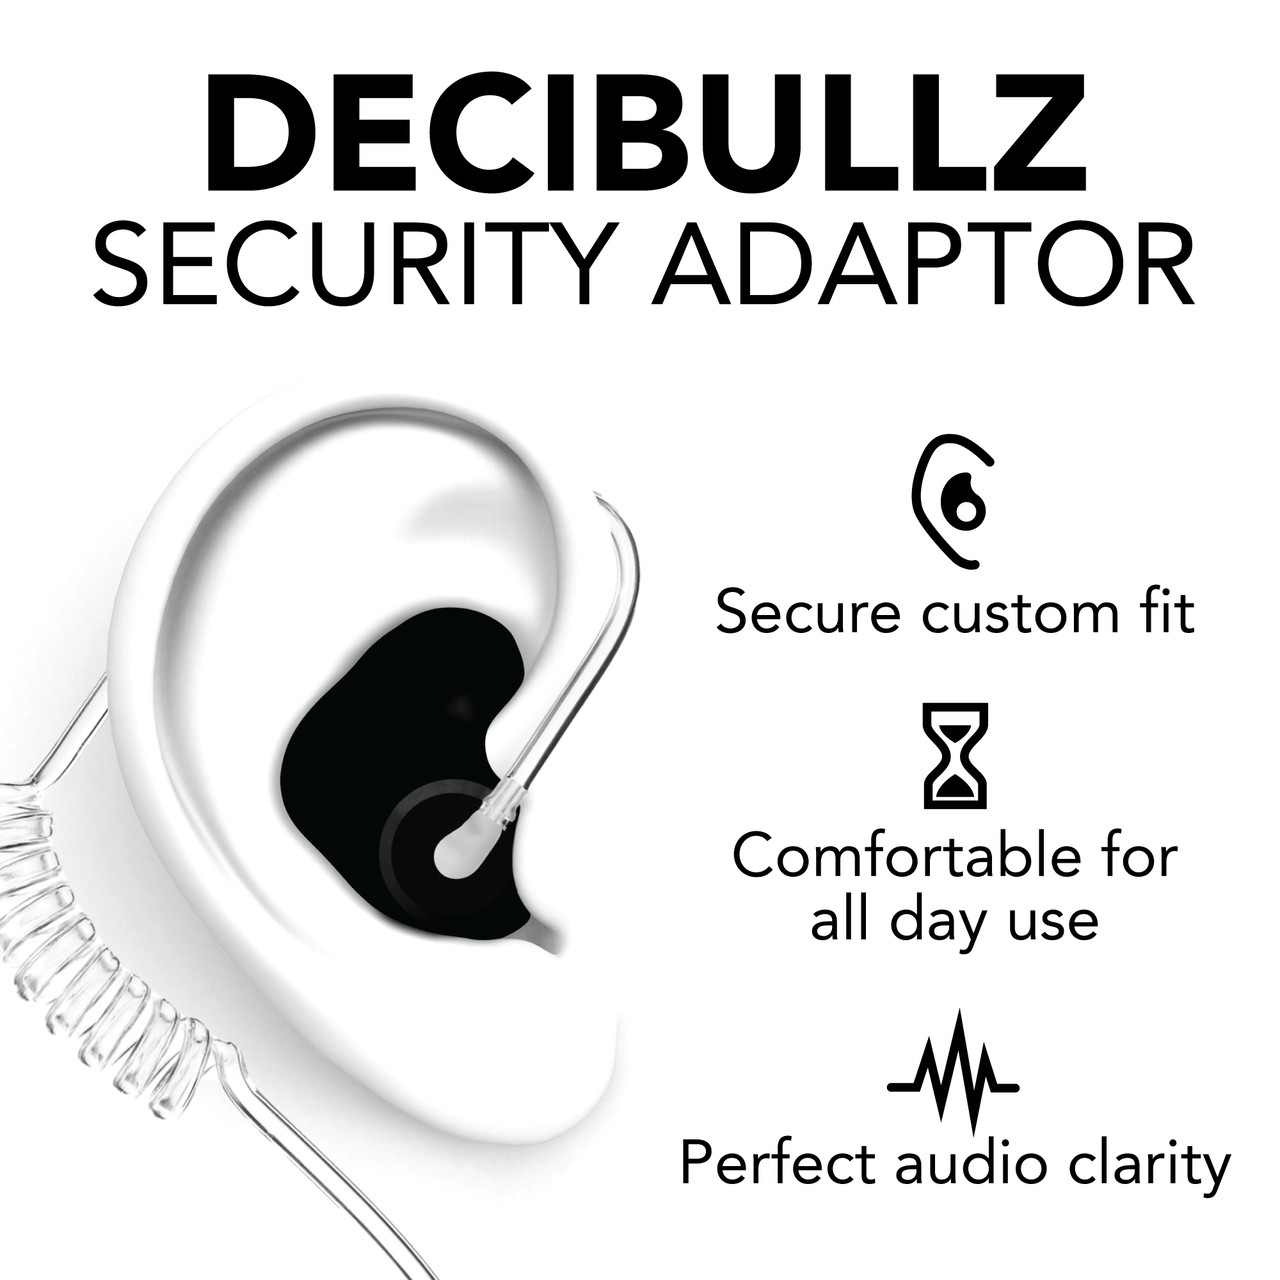 DECIBULLZ Molded Earplug with Security Adapter for Surveillance Microphones